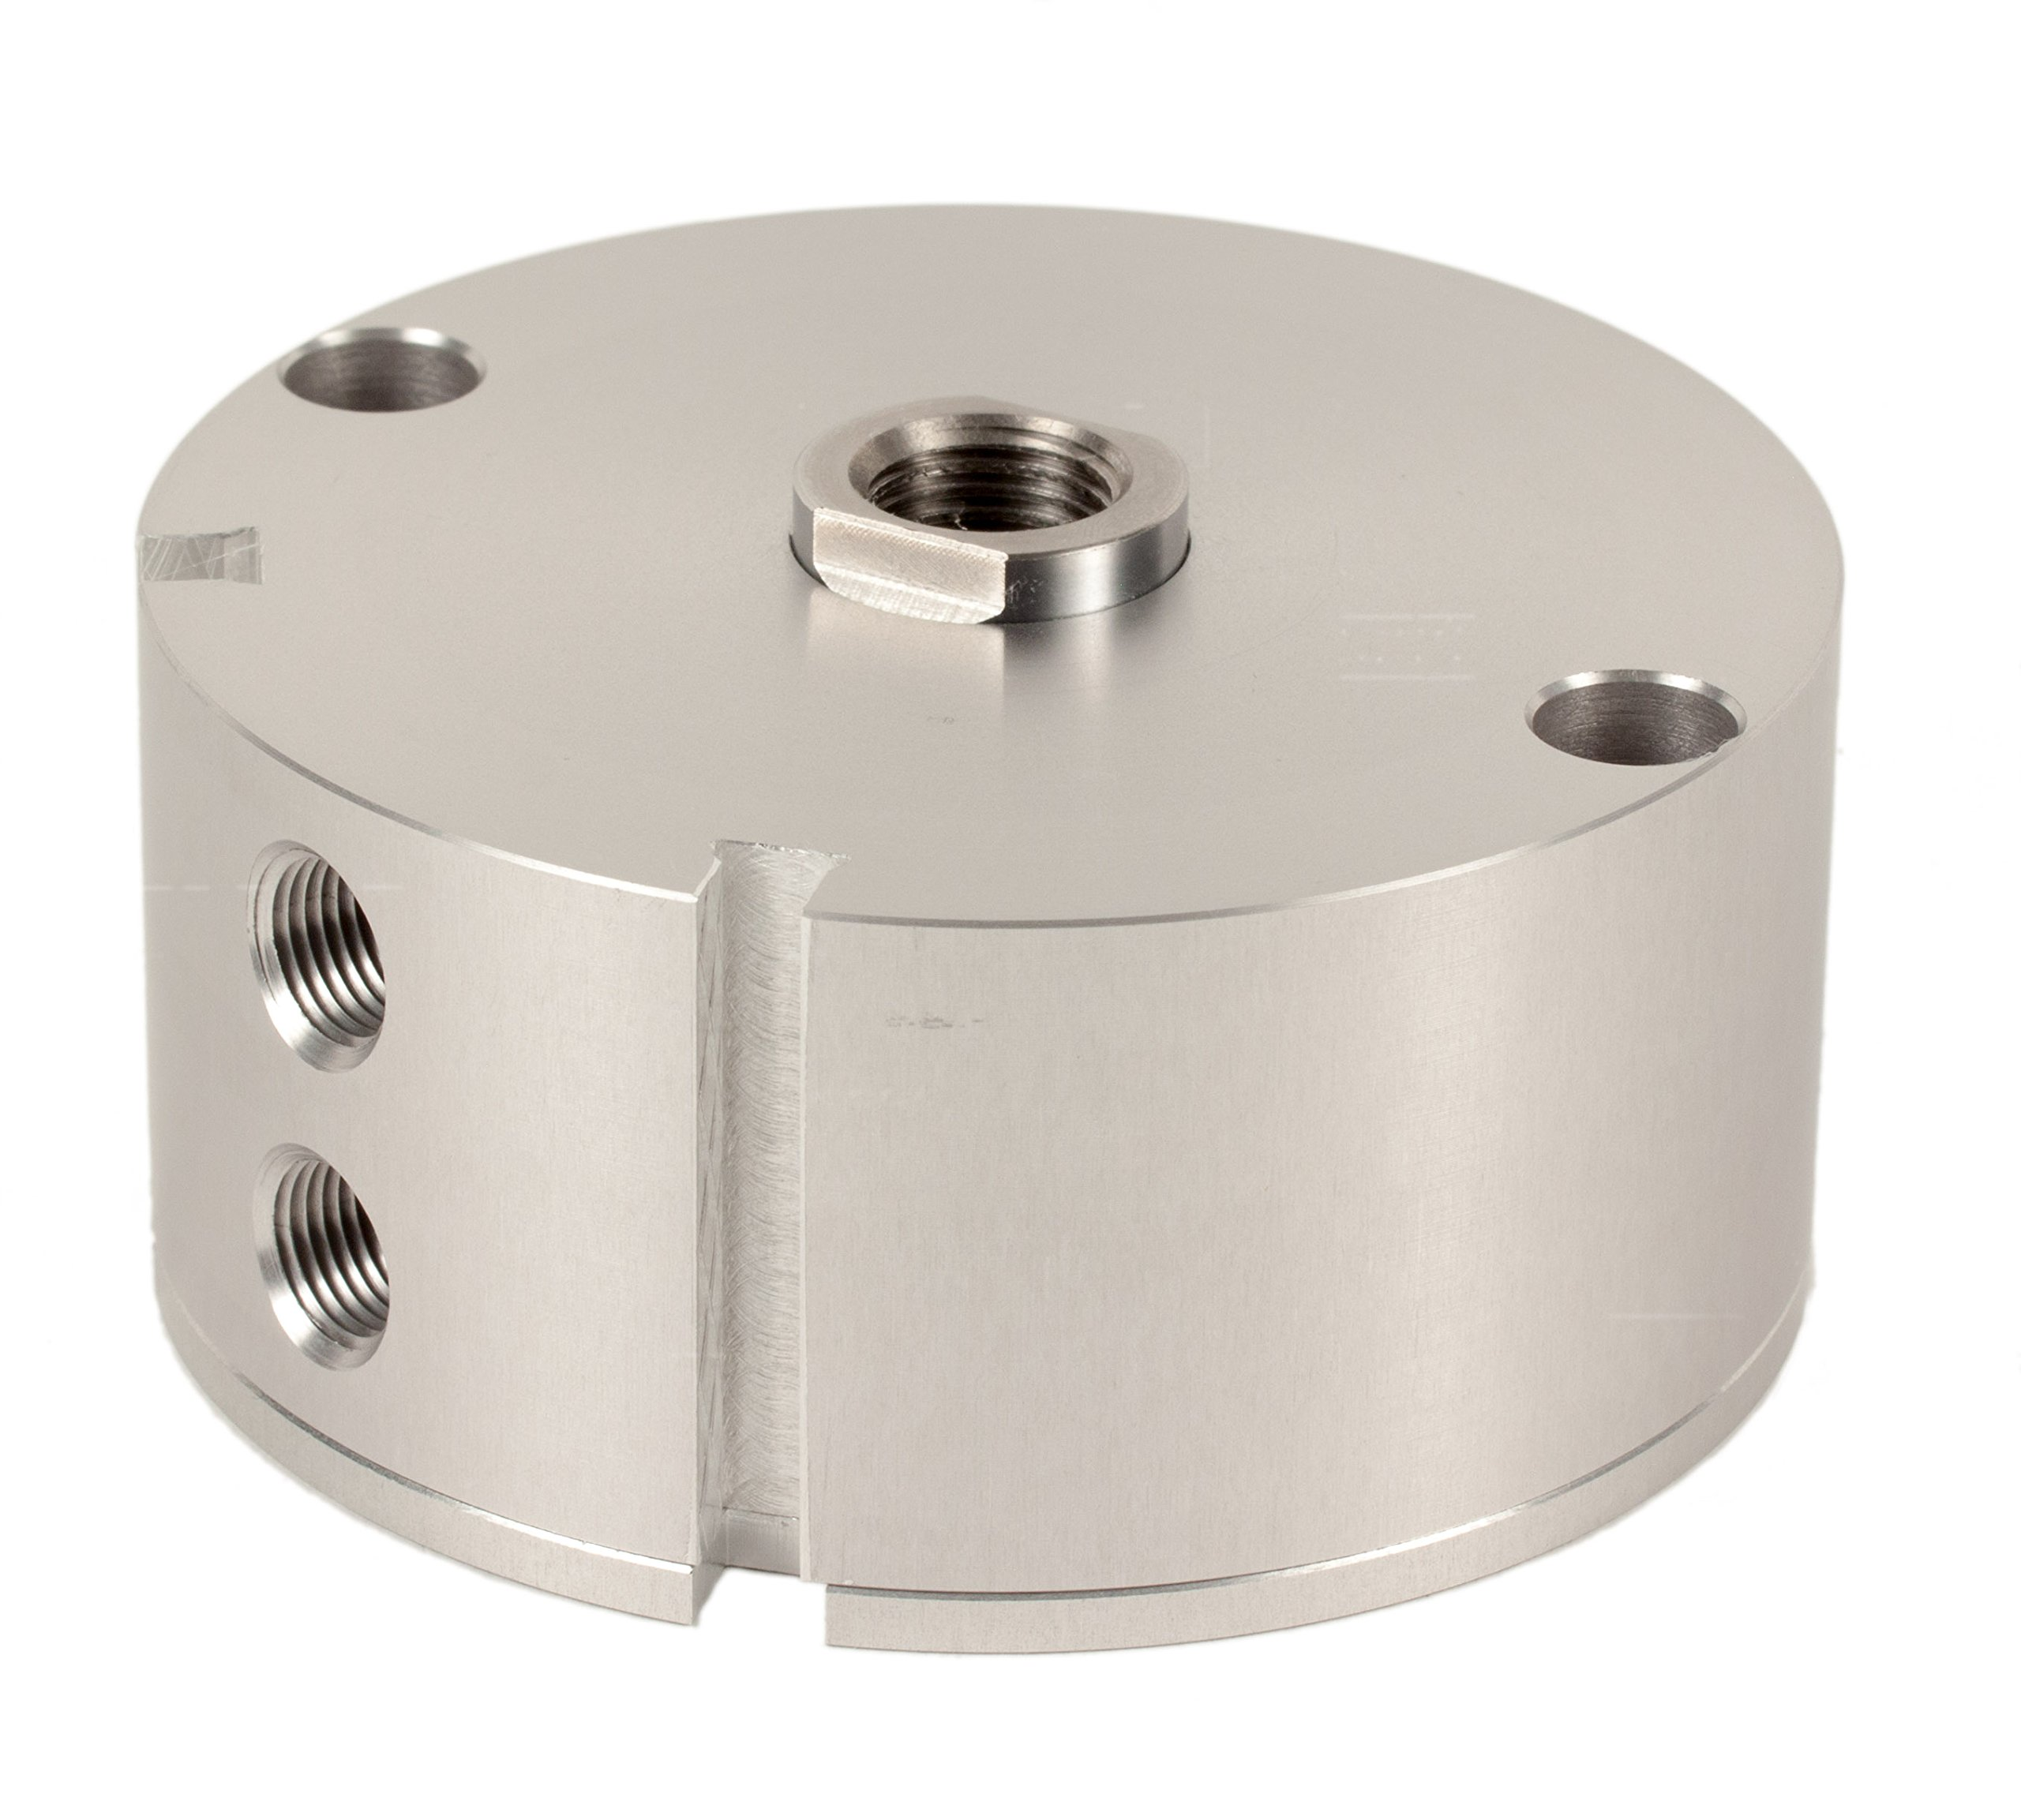 Fabco-Air A-321-X-E Original Pancake Cylinder, Double Acting, Maximum Pressure of 250 PSI, Switch Ready with Magnet, 2'' Bore Diameter x 3/8'' Stroke